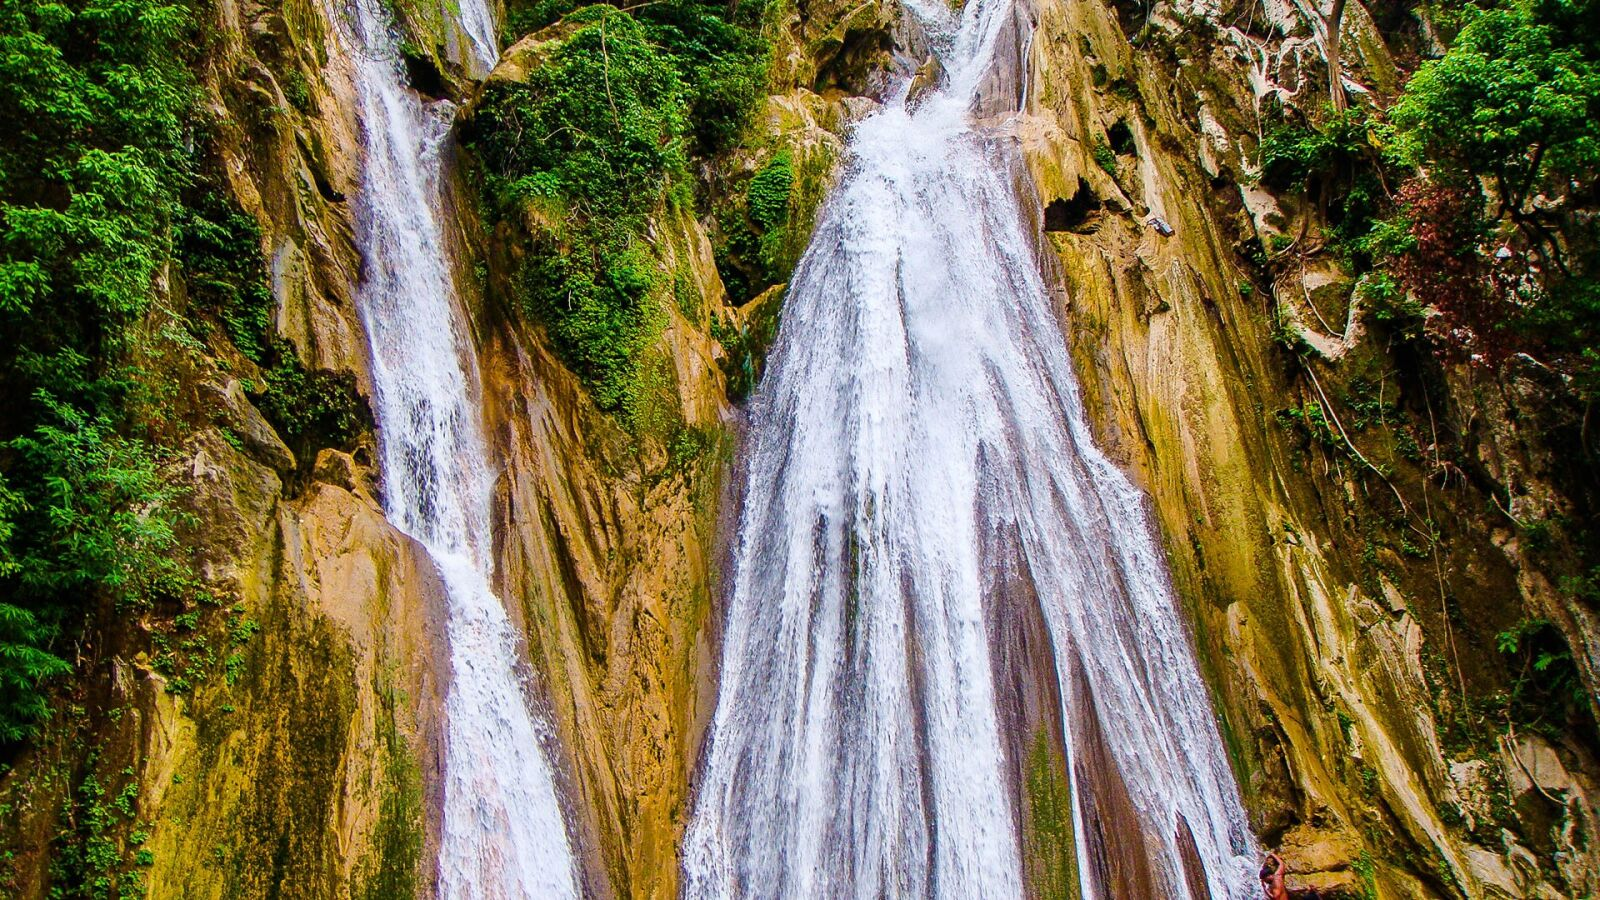 """Sony DSC-T300 sample photo. """"Waterfall, mussorie, nature"""" photography"""